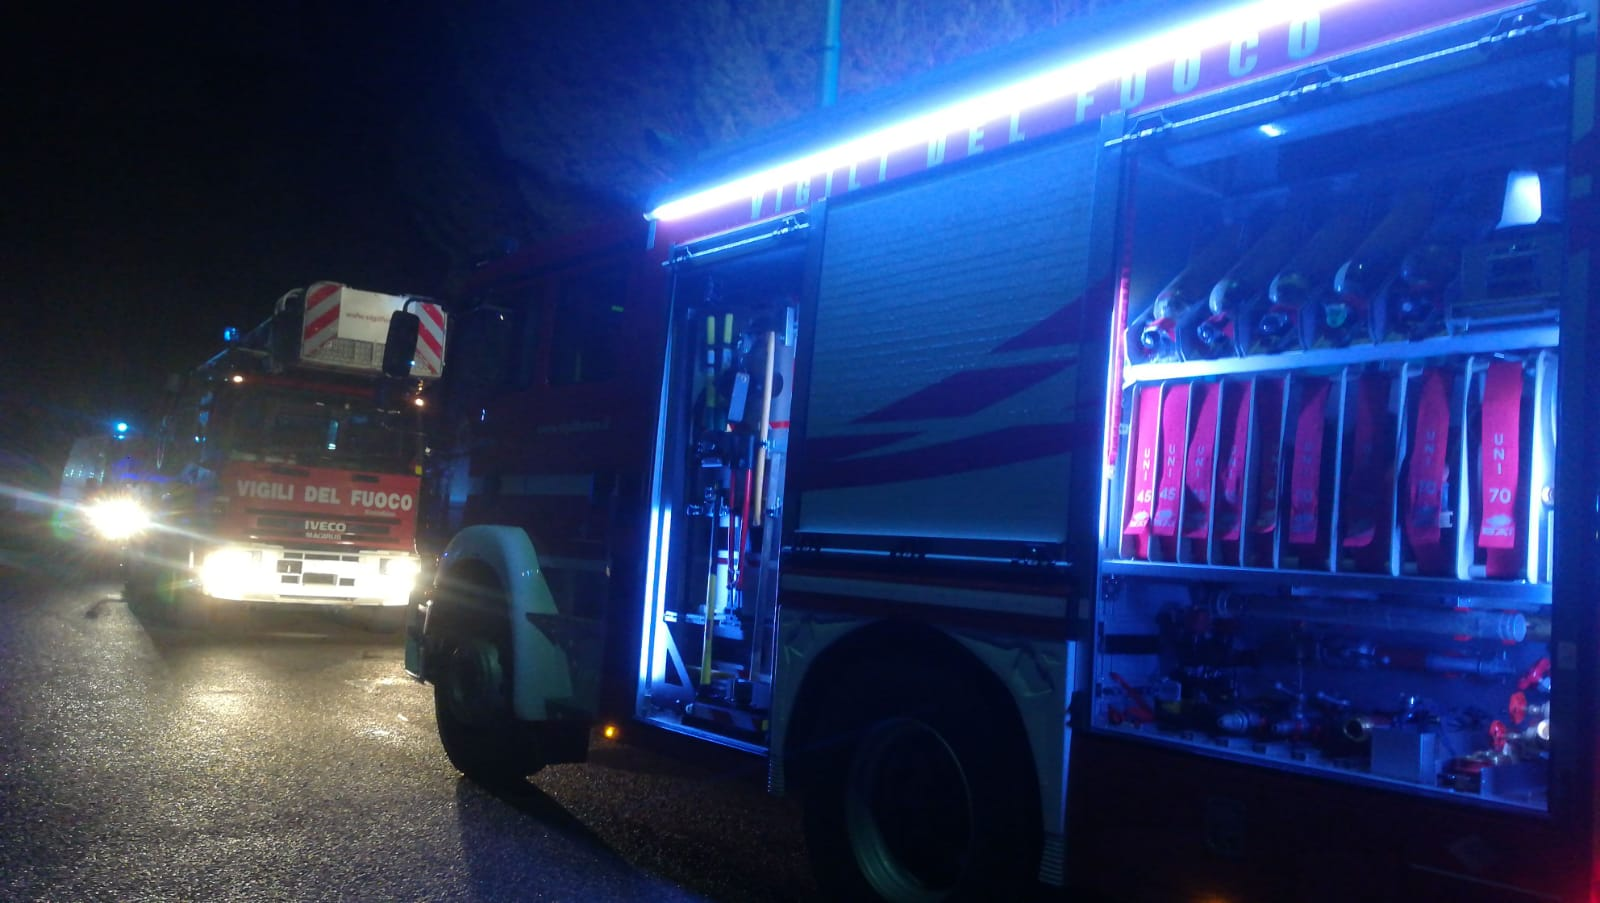 cantina in fiamme a cairate